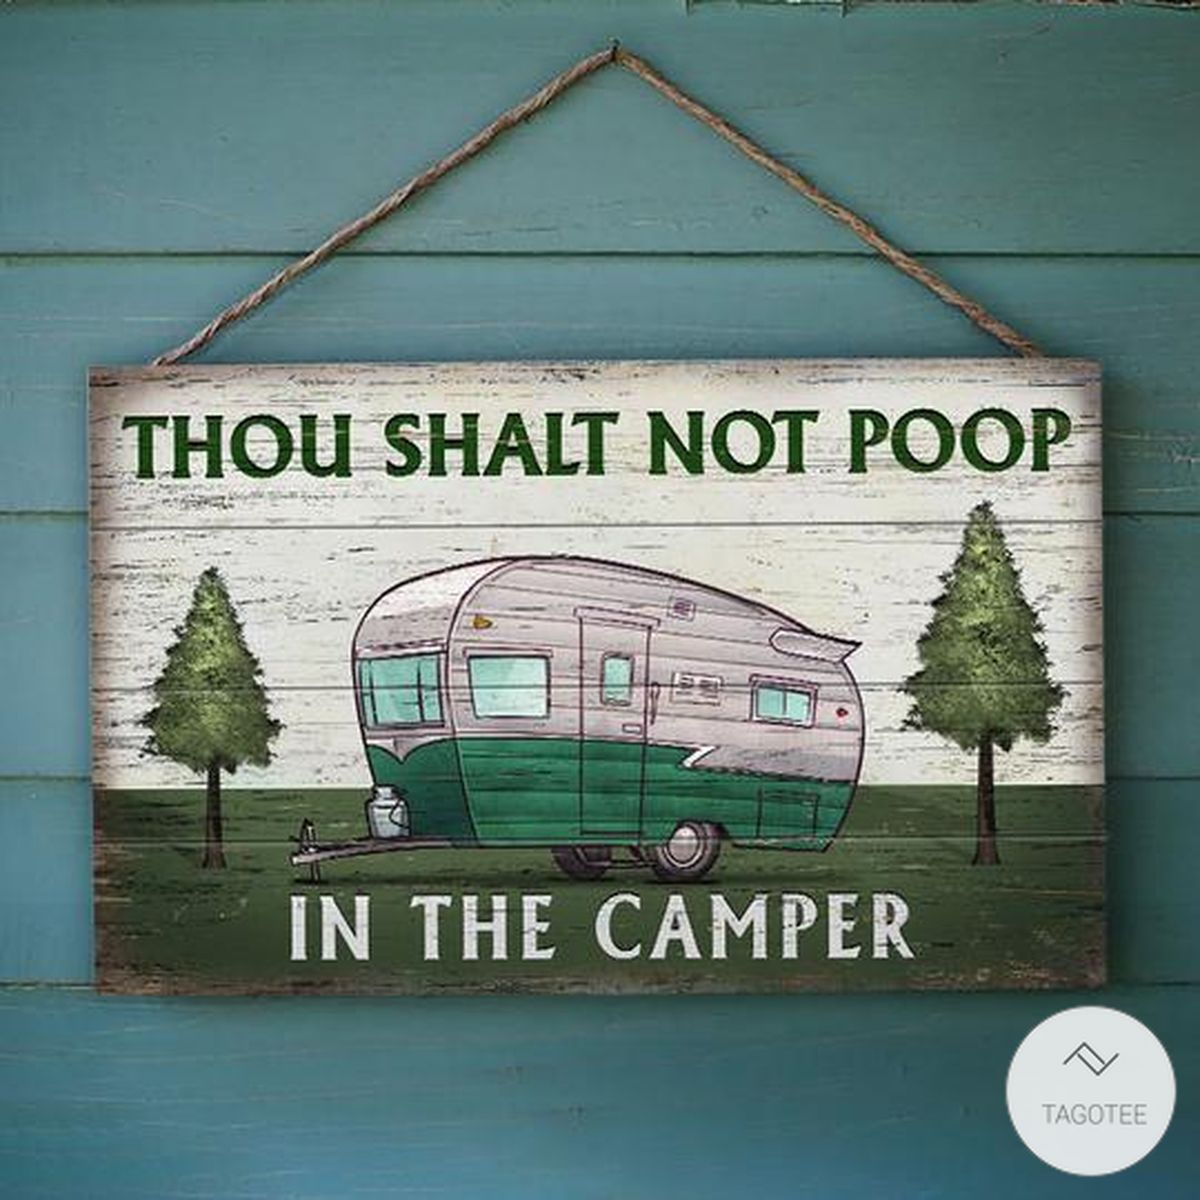 Camping Thou Shalt Not Poop In The Camper Rectangle Wood Sign